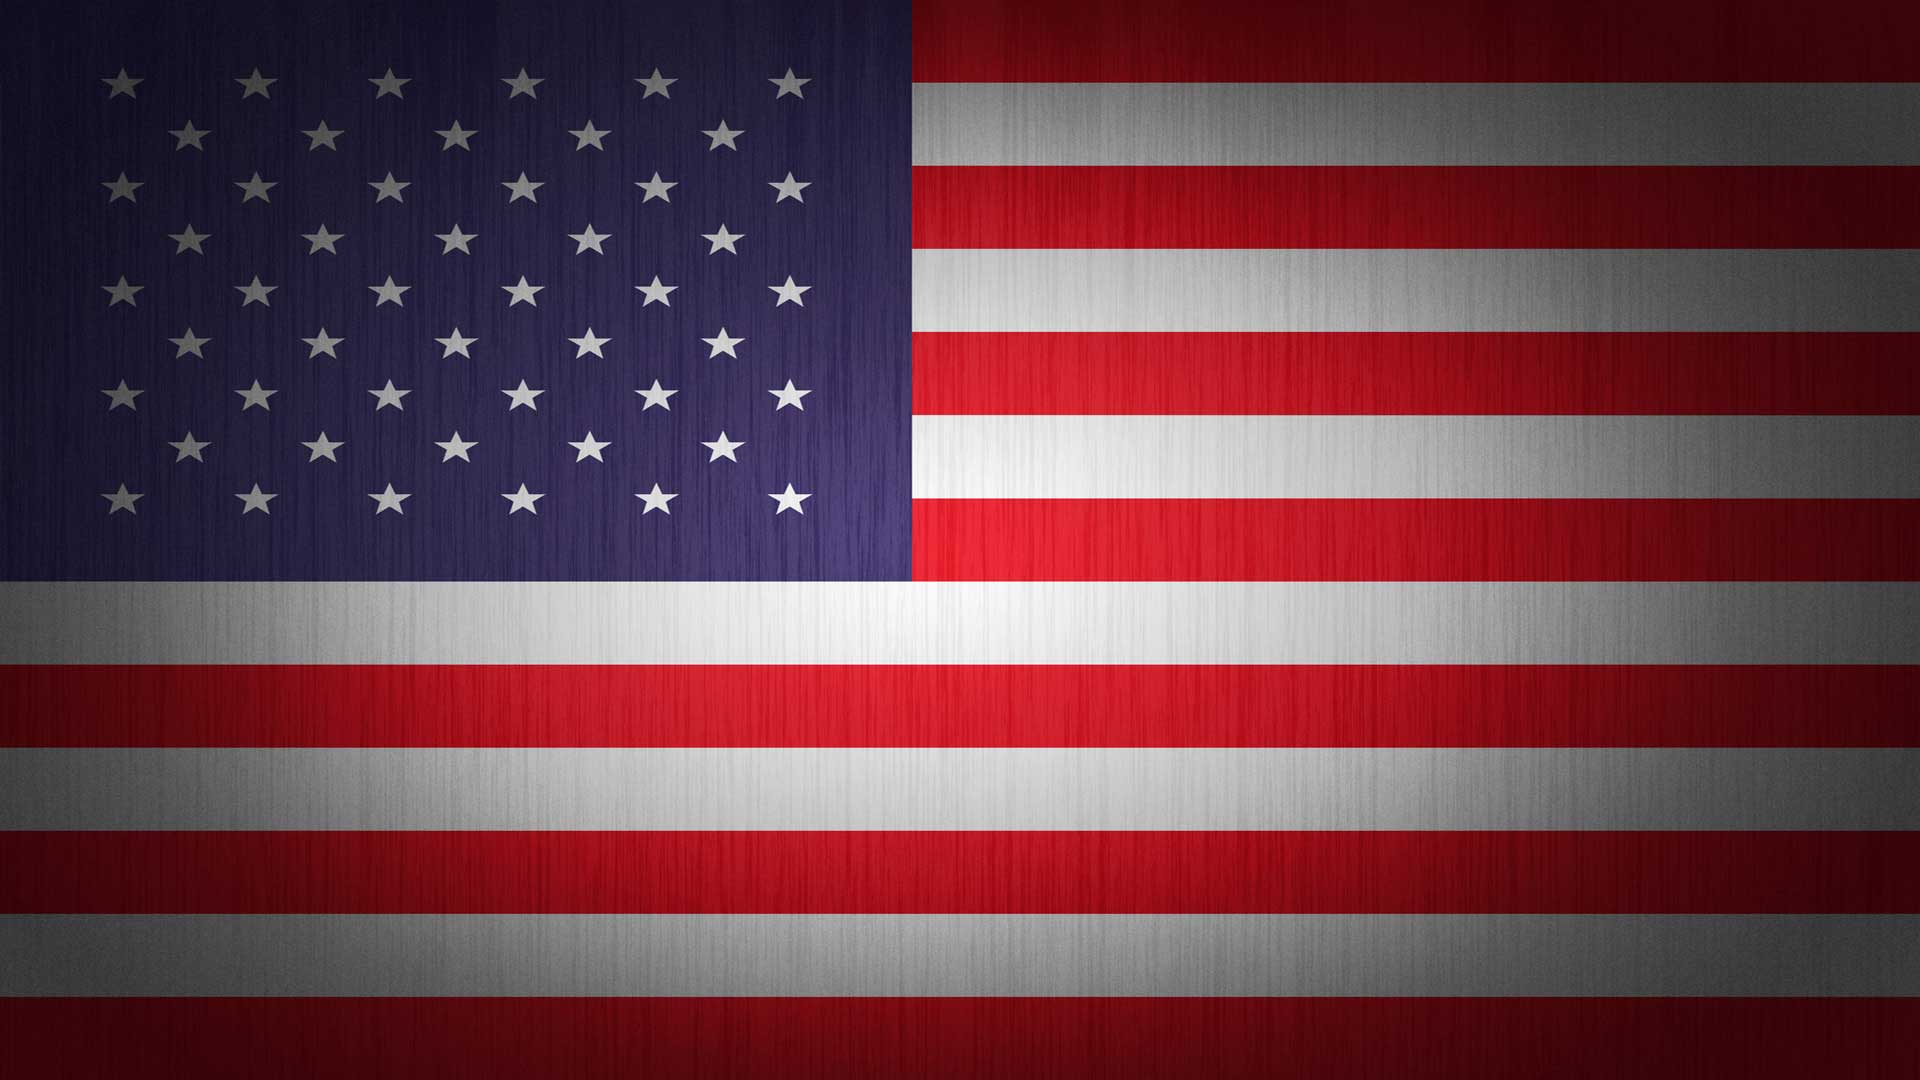 Download Stars And Stripes Wallpaper Gallery